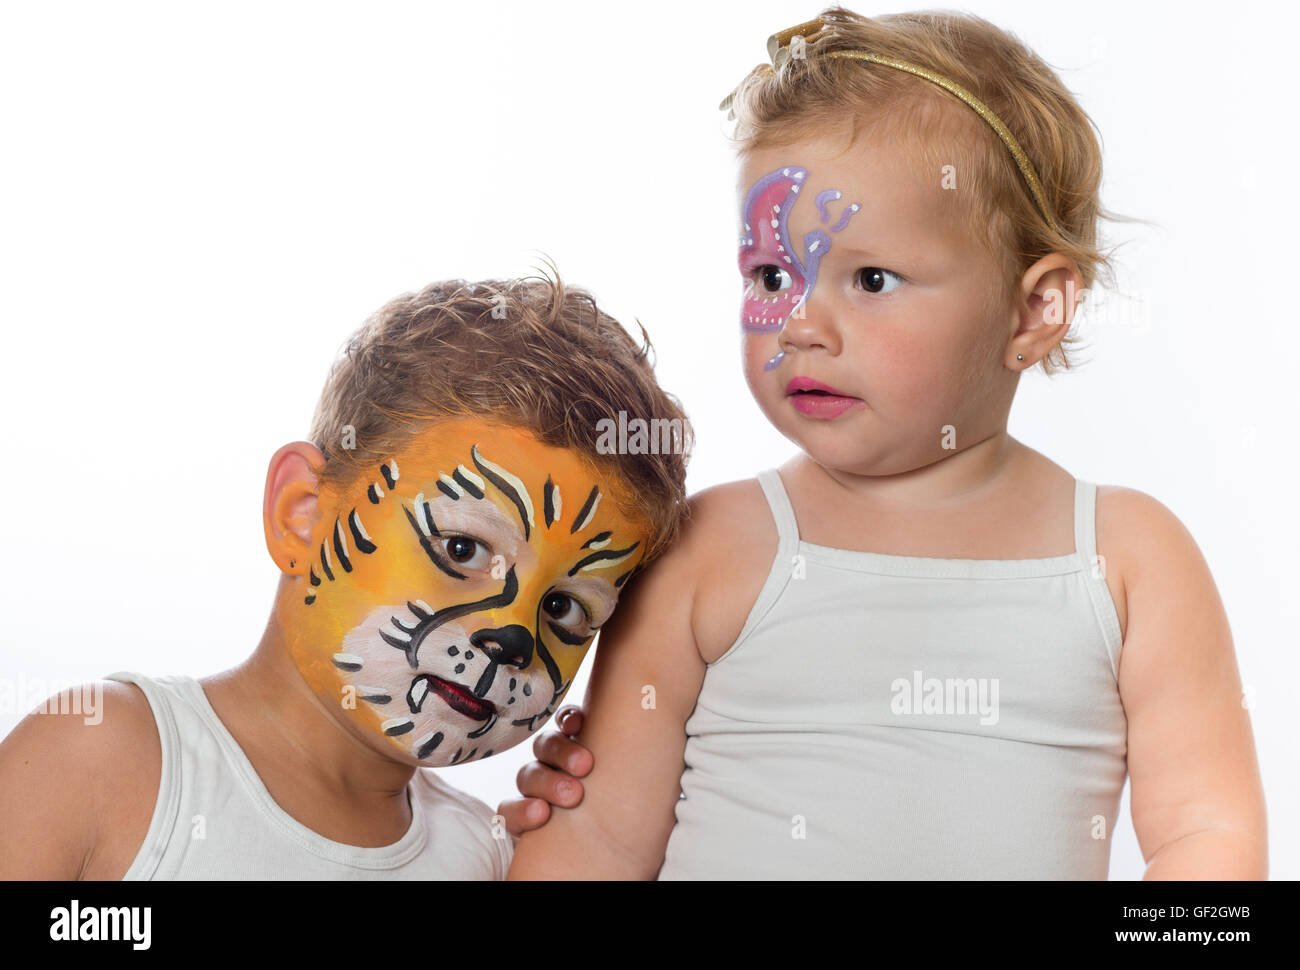 brother and sister with facepaintings of a tiger and a butterlfy - Stock Image